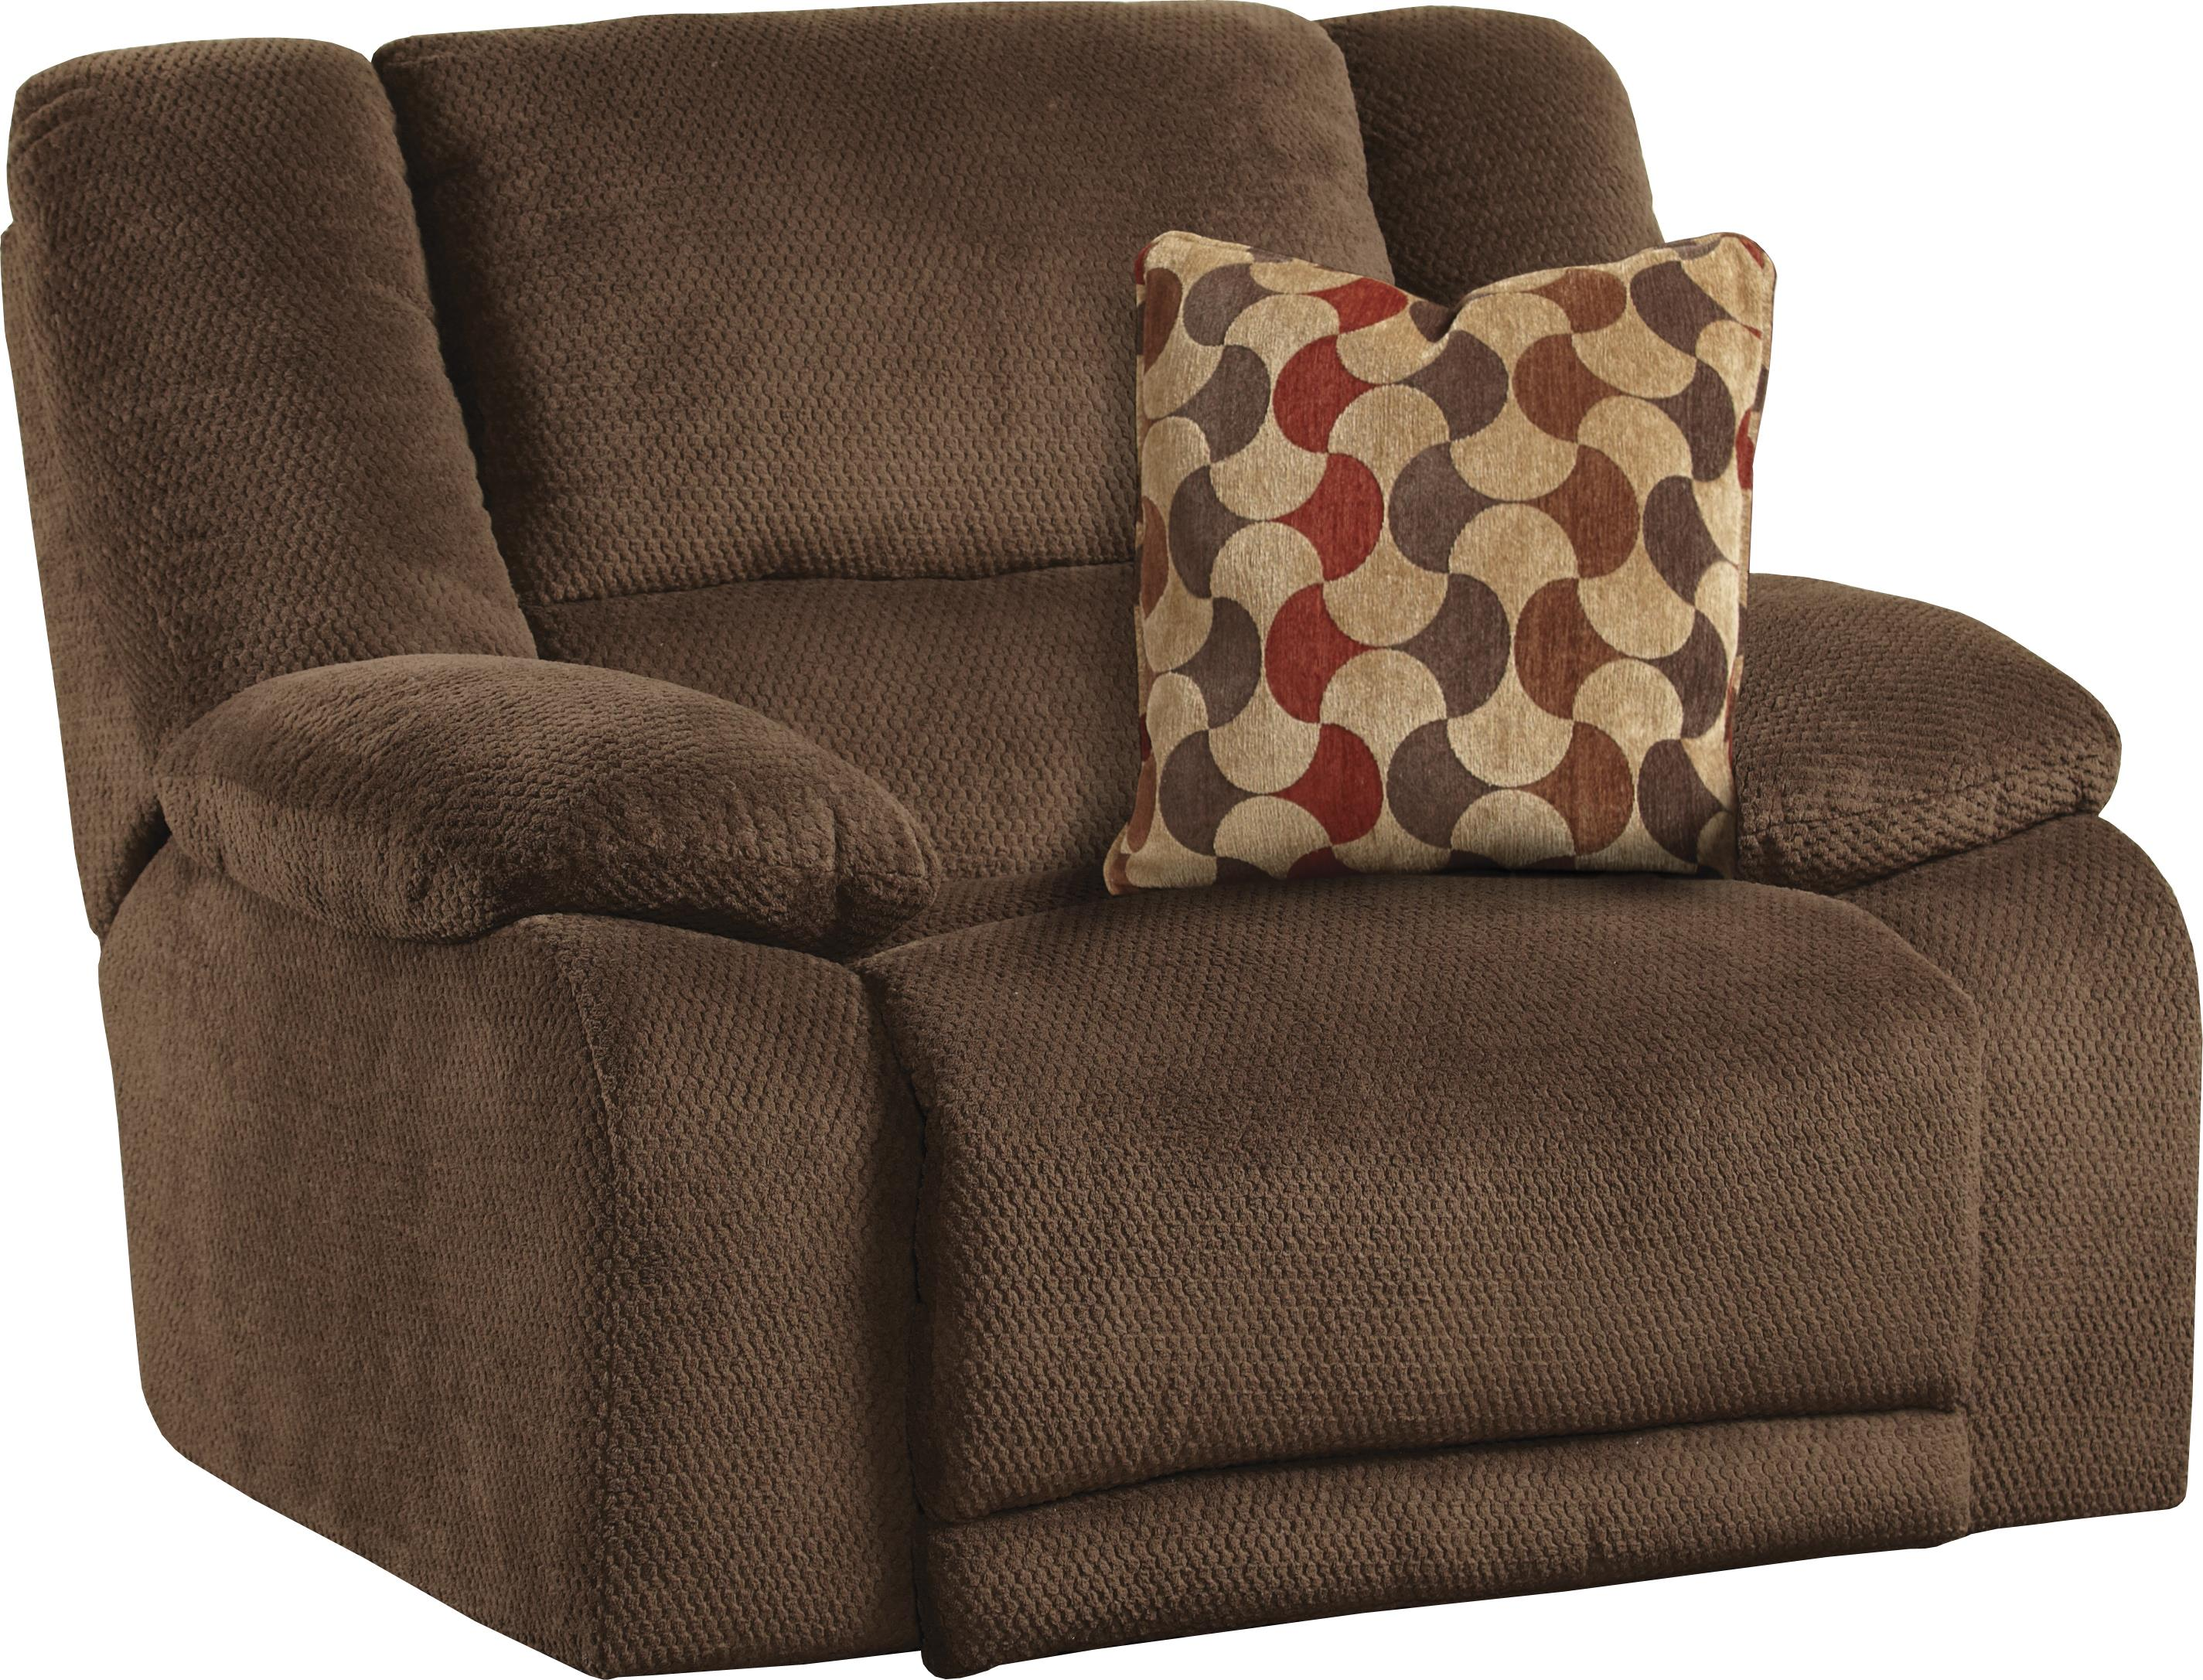 Catnapper Hammond Power Wall Hugger Recliner - Item Number: 61440-4-2776-19